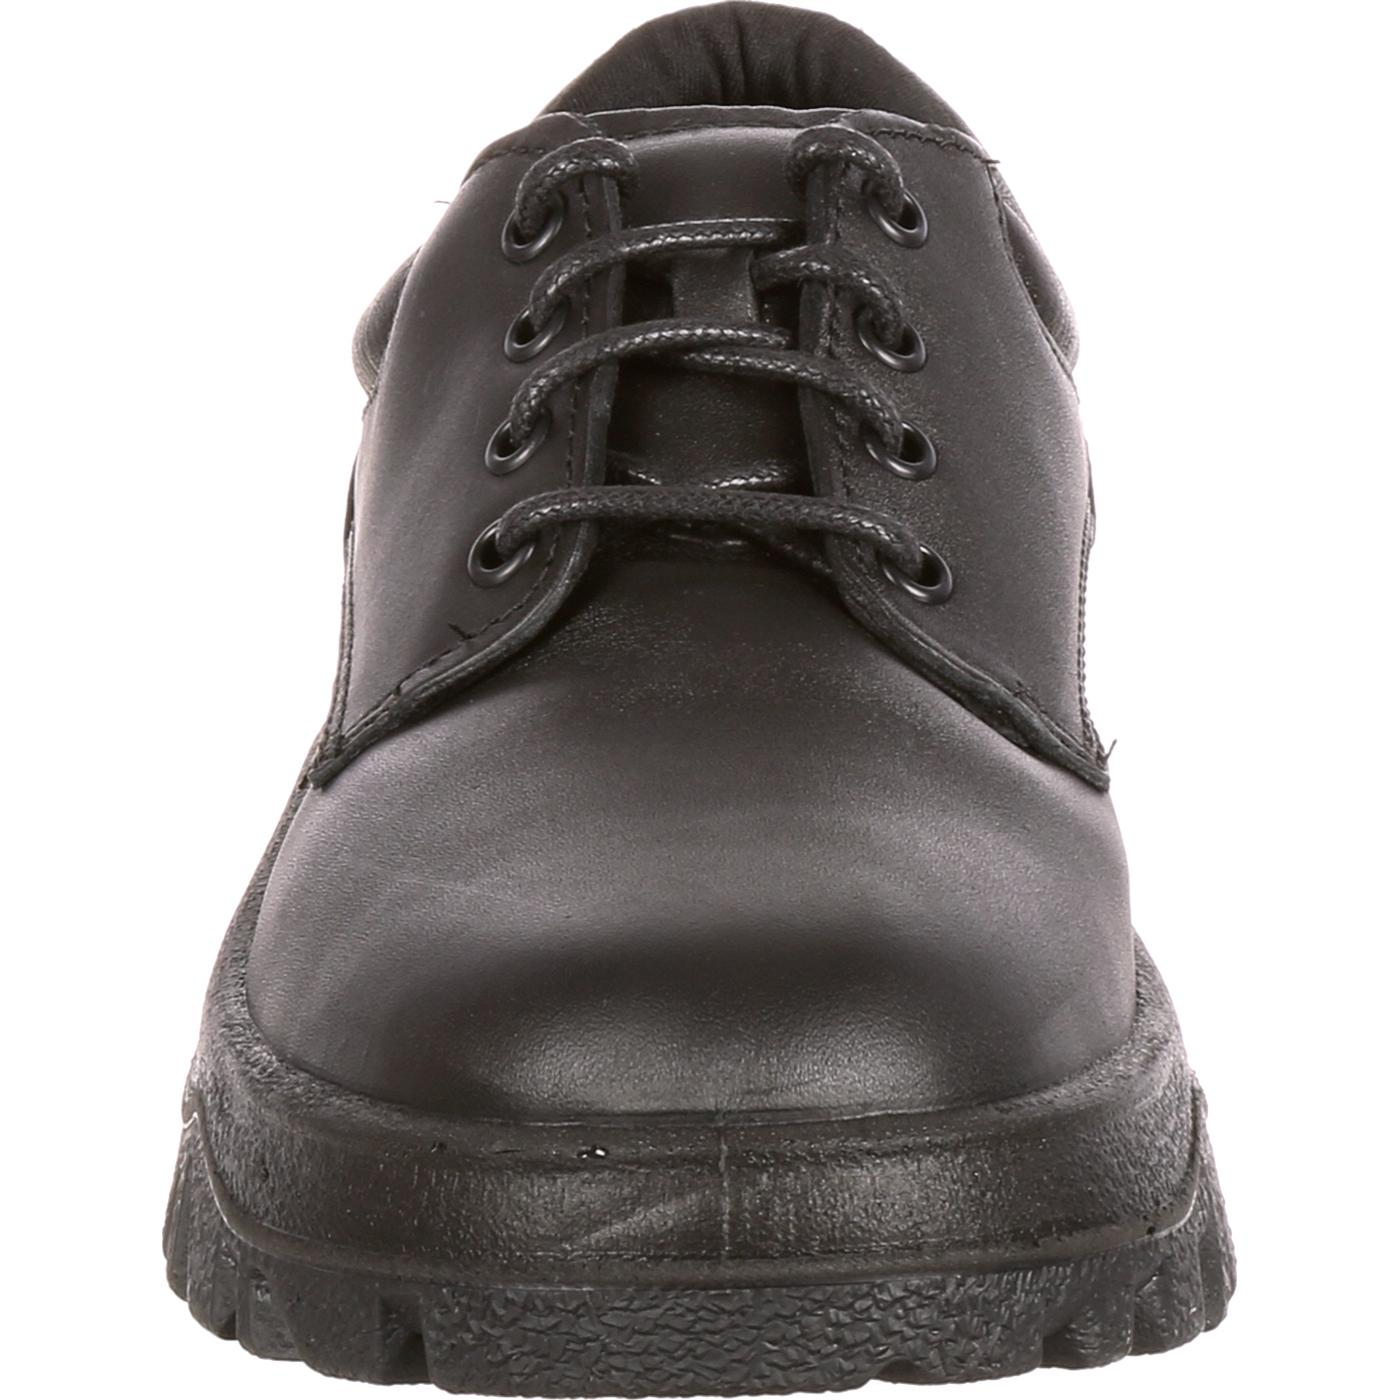 6dc630bdc71 Rocky TMC Postal-Approved Plain Toe Oxford Shoe